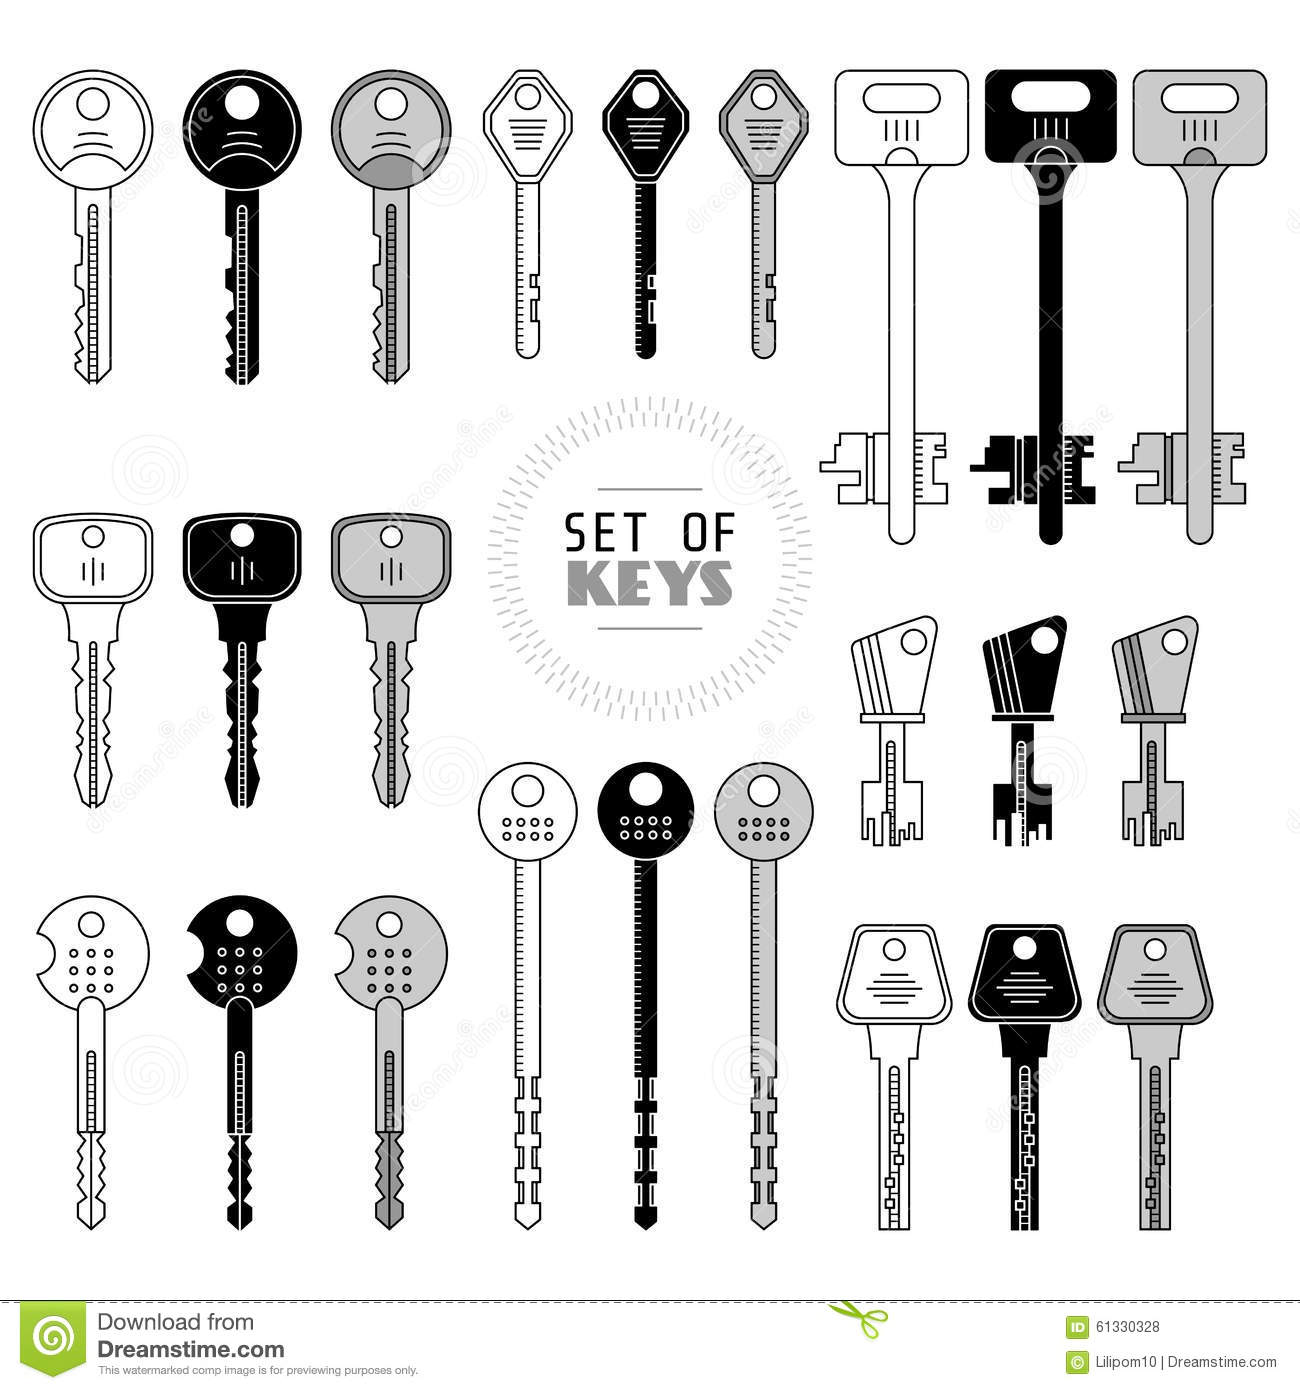 set of keys stock vector  illustration of object  house